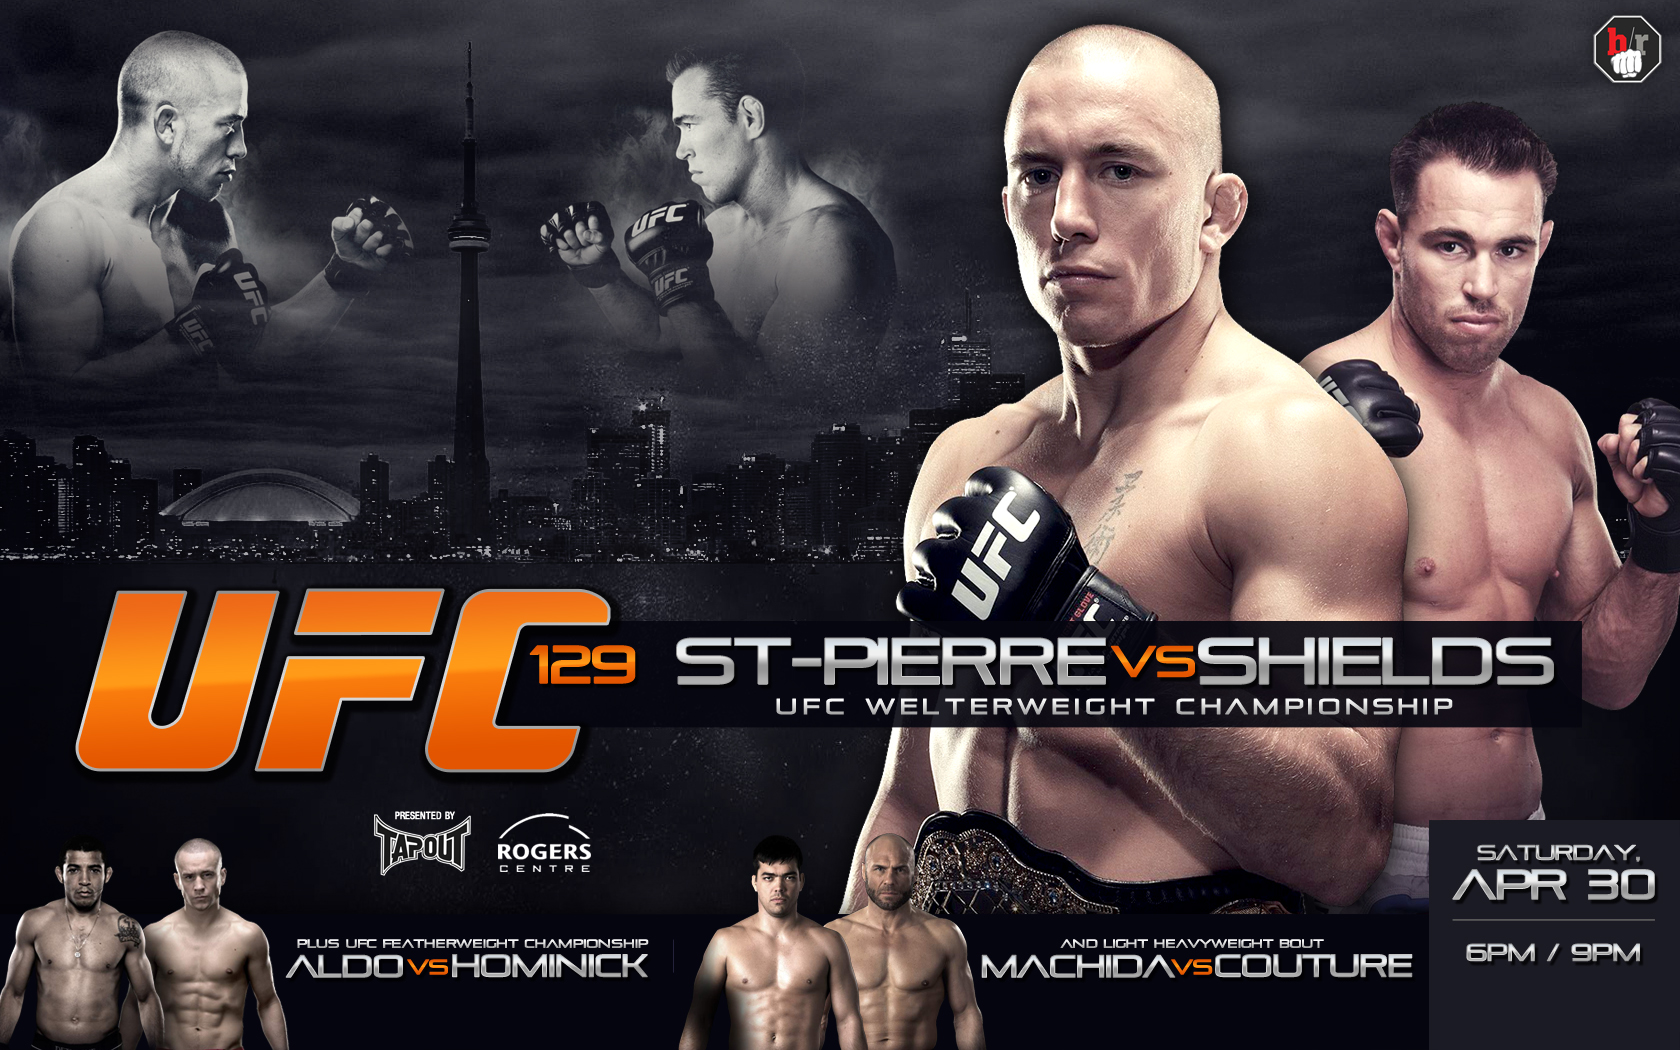 UFC 129 St-Pierre vs  Shields Theme Songs: Reviewing the